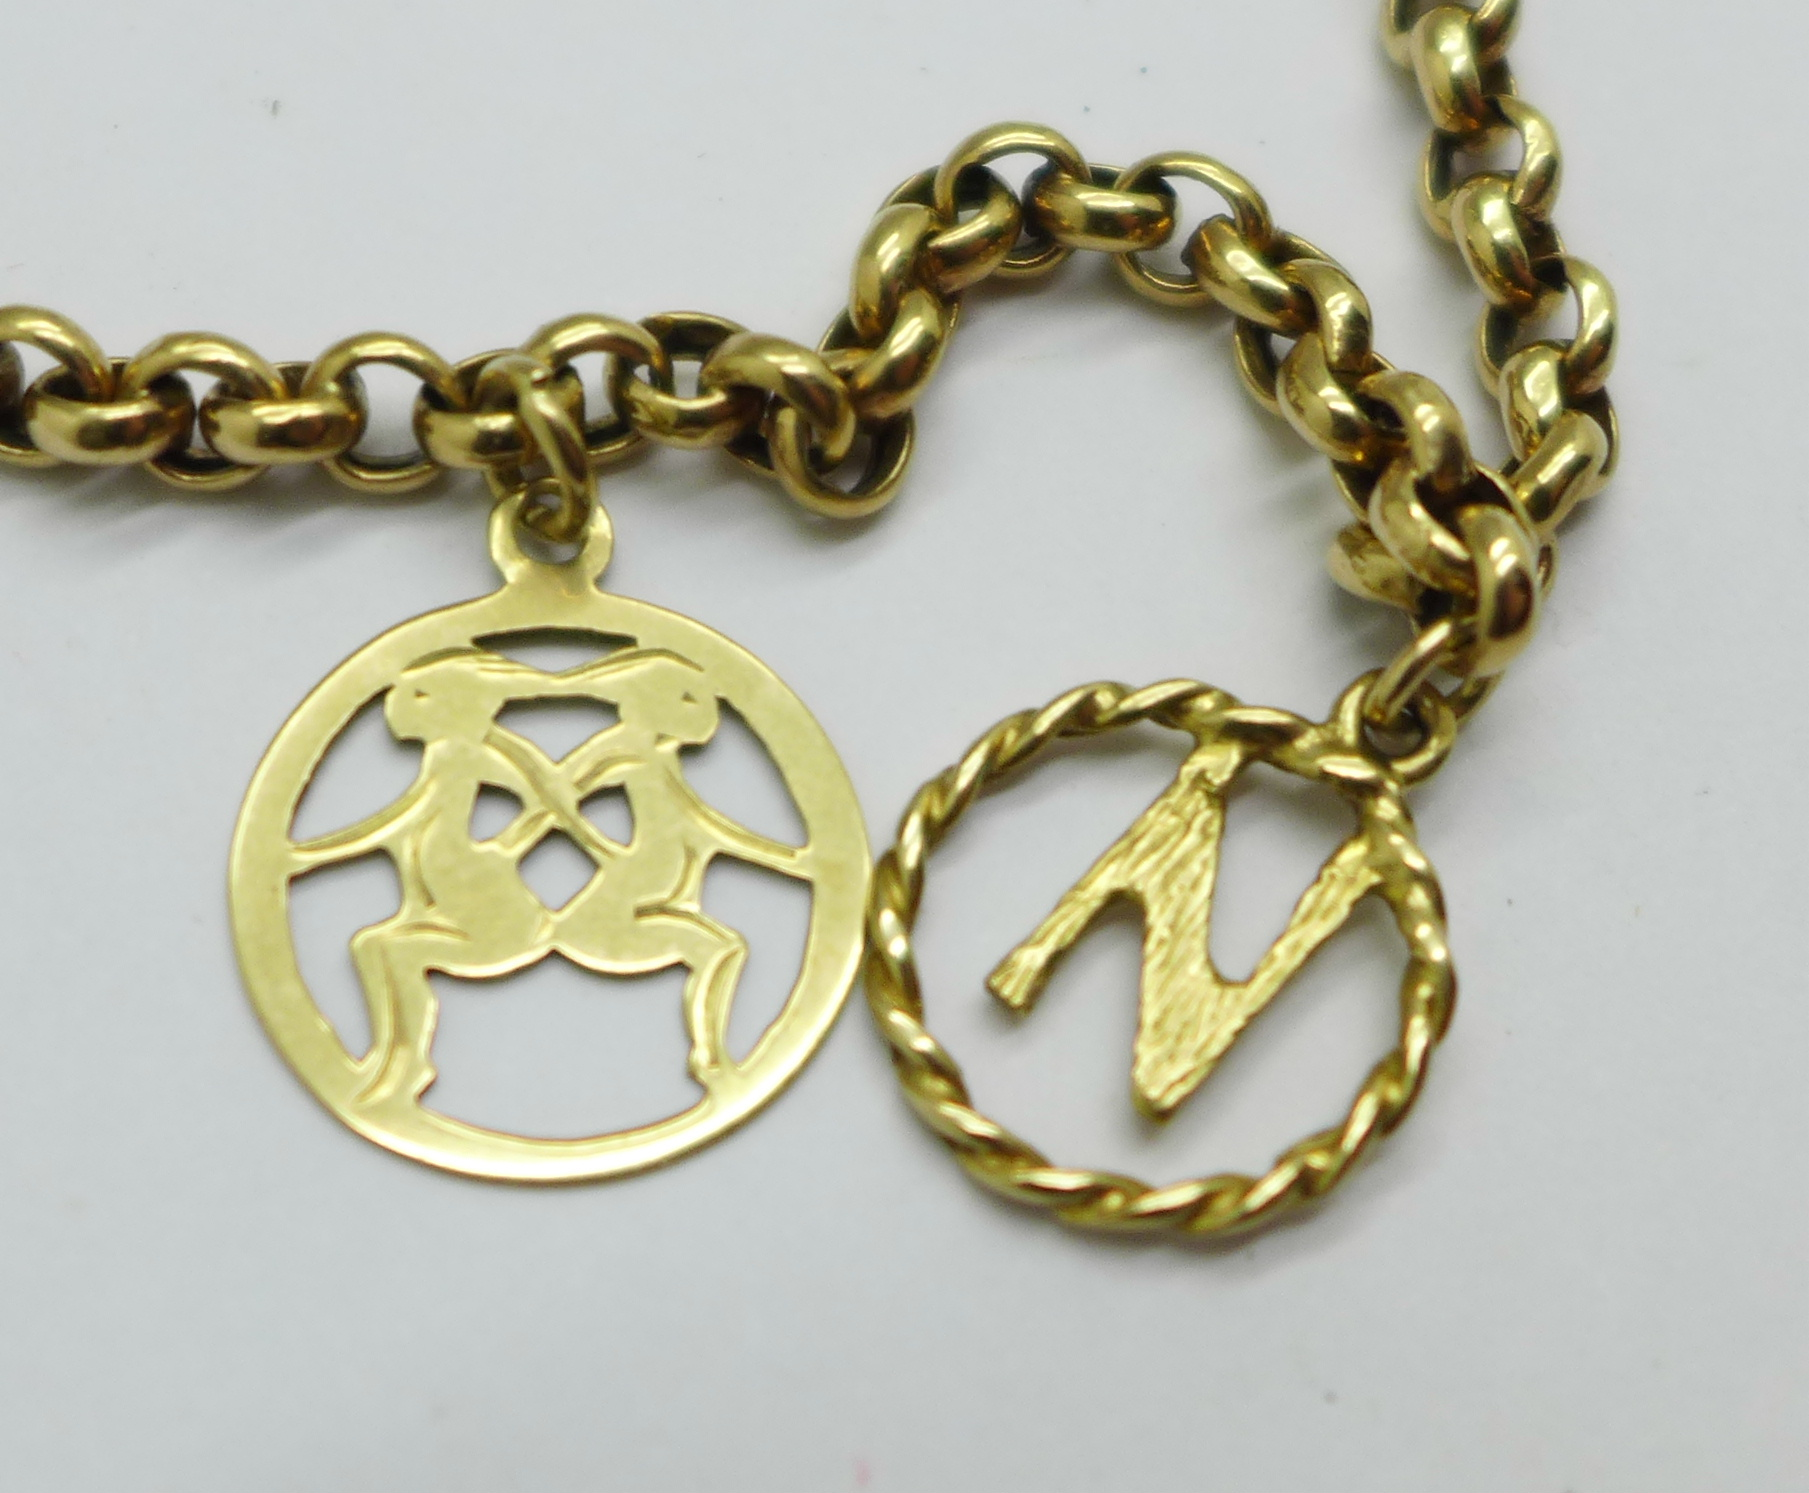 A 9ct gold bracelet with two charms, 5.0g - Image 2 of 2